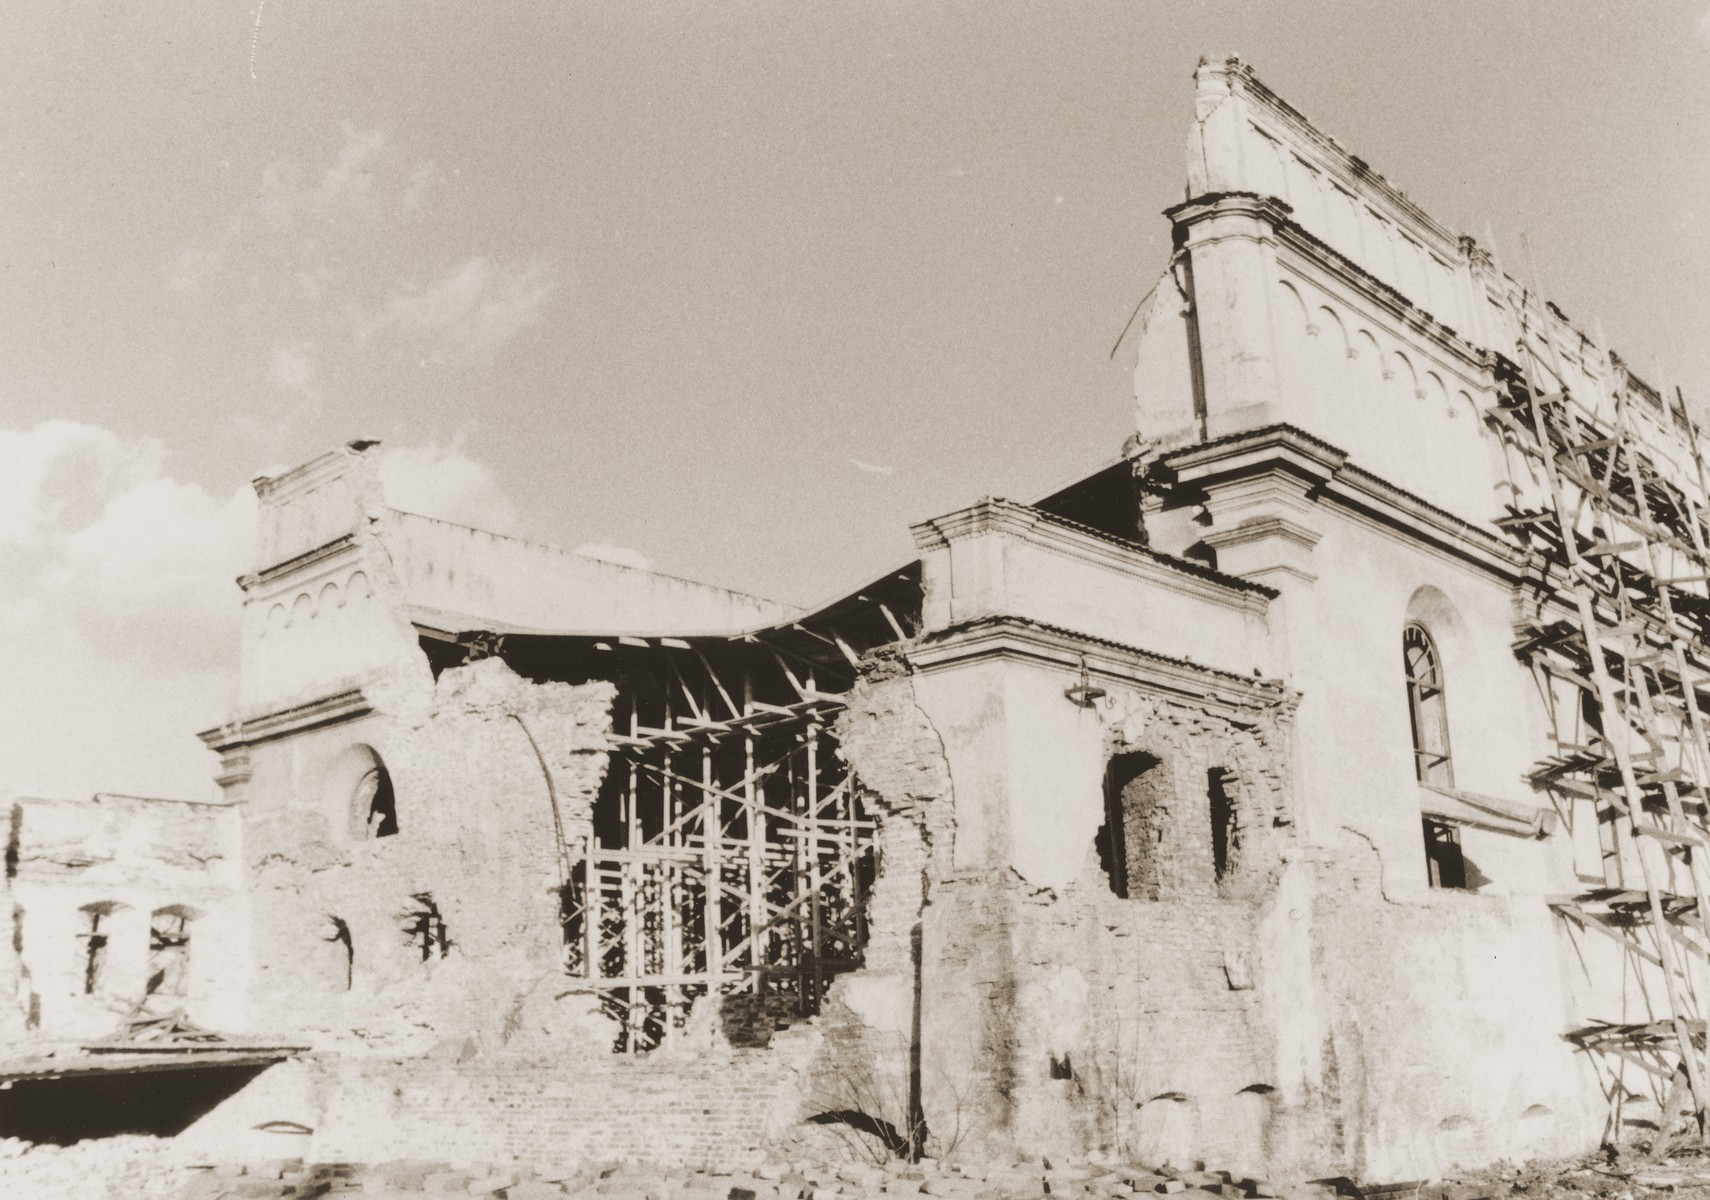 View of the ruins of the main synagogue in Brody.